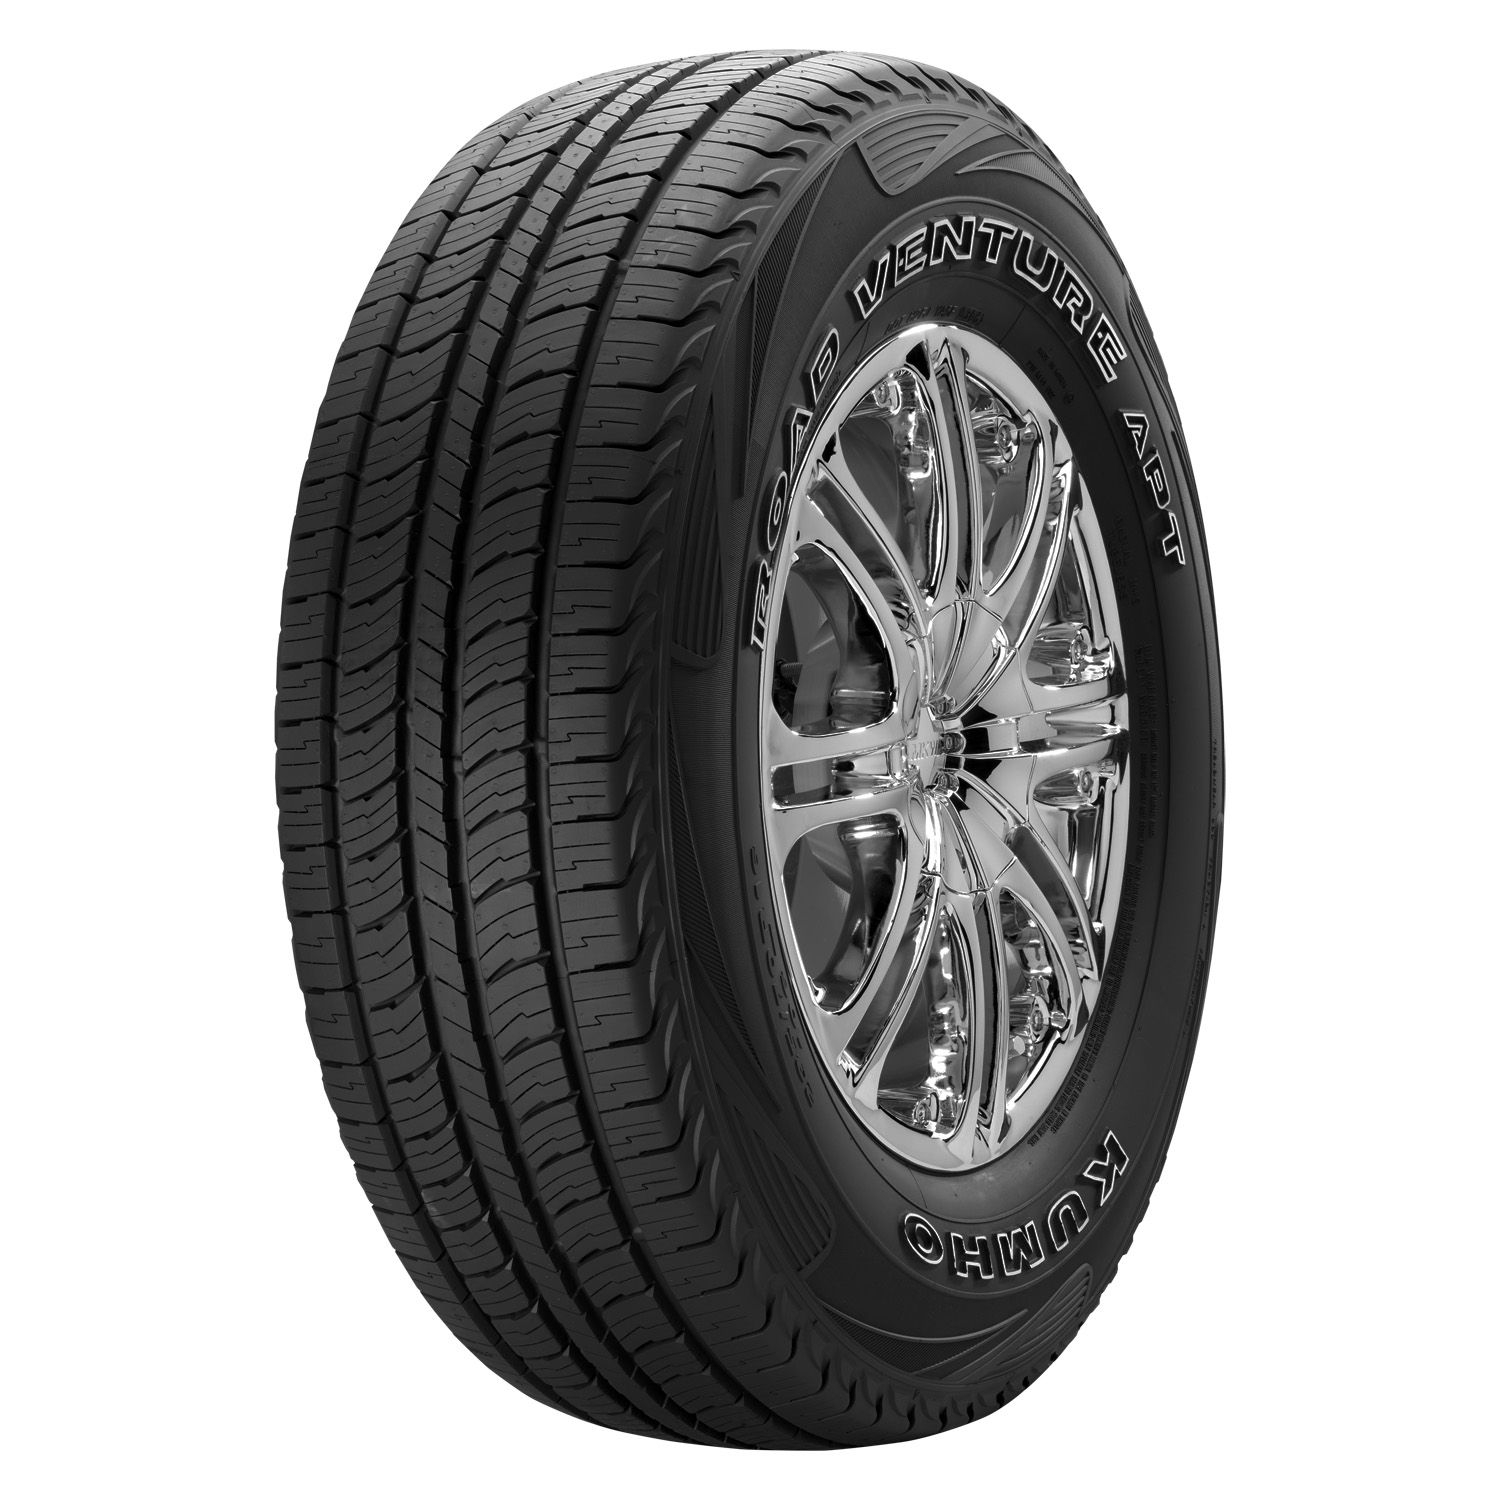 Road Venture APT KL51 - LT225/75R16 110/107S OWL - All Season Tire